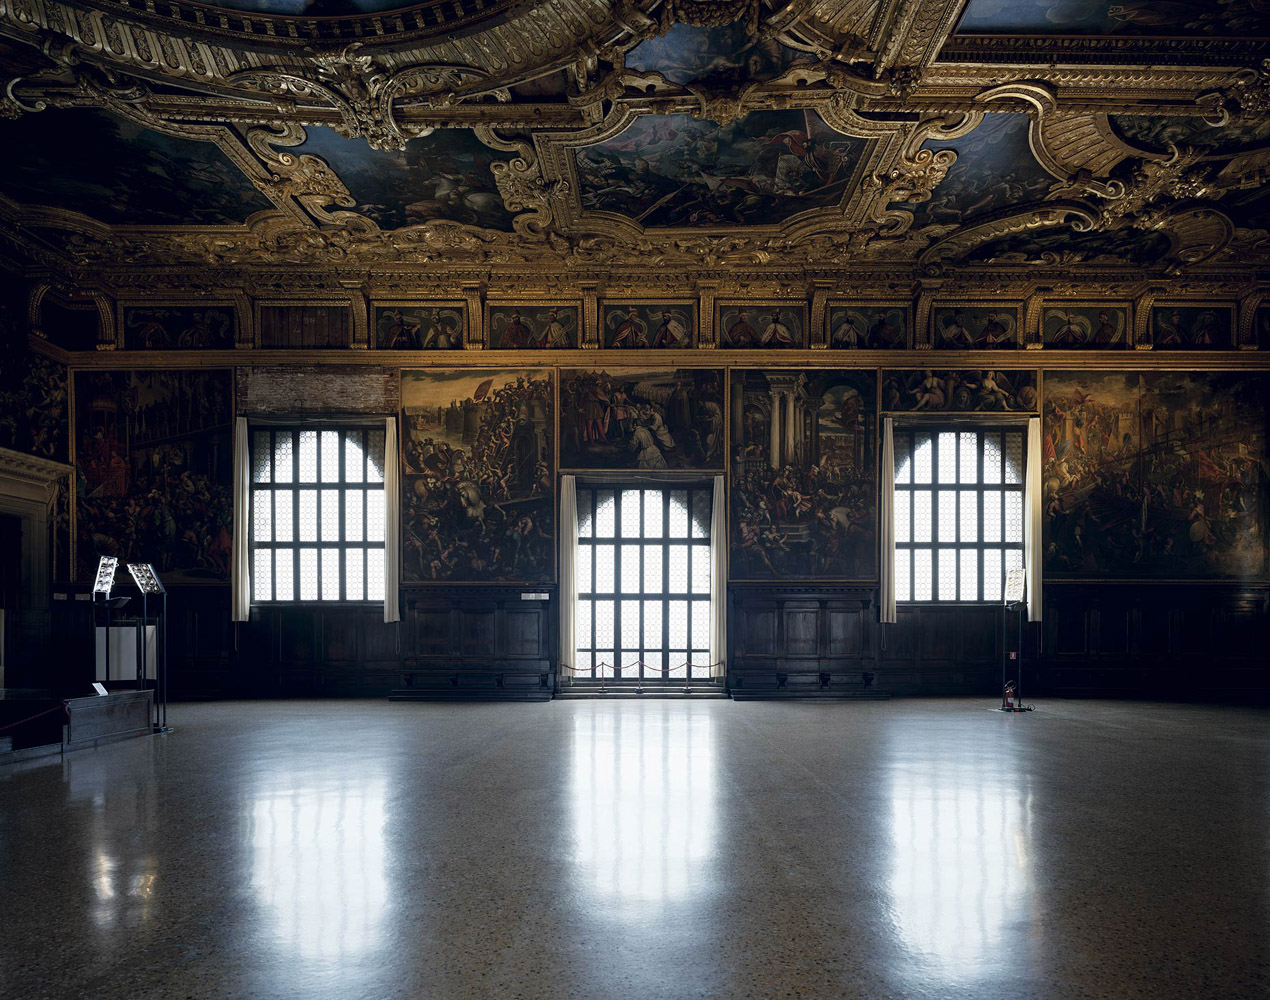 Palazzo Ducale, Venice, Italy, 2012 by David Leventi. Archive print of an interior palace room, mounted to Dibond